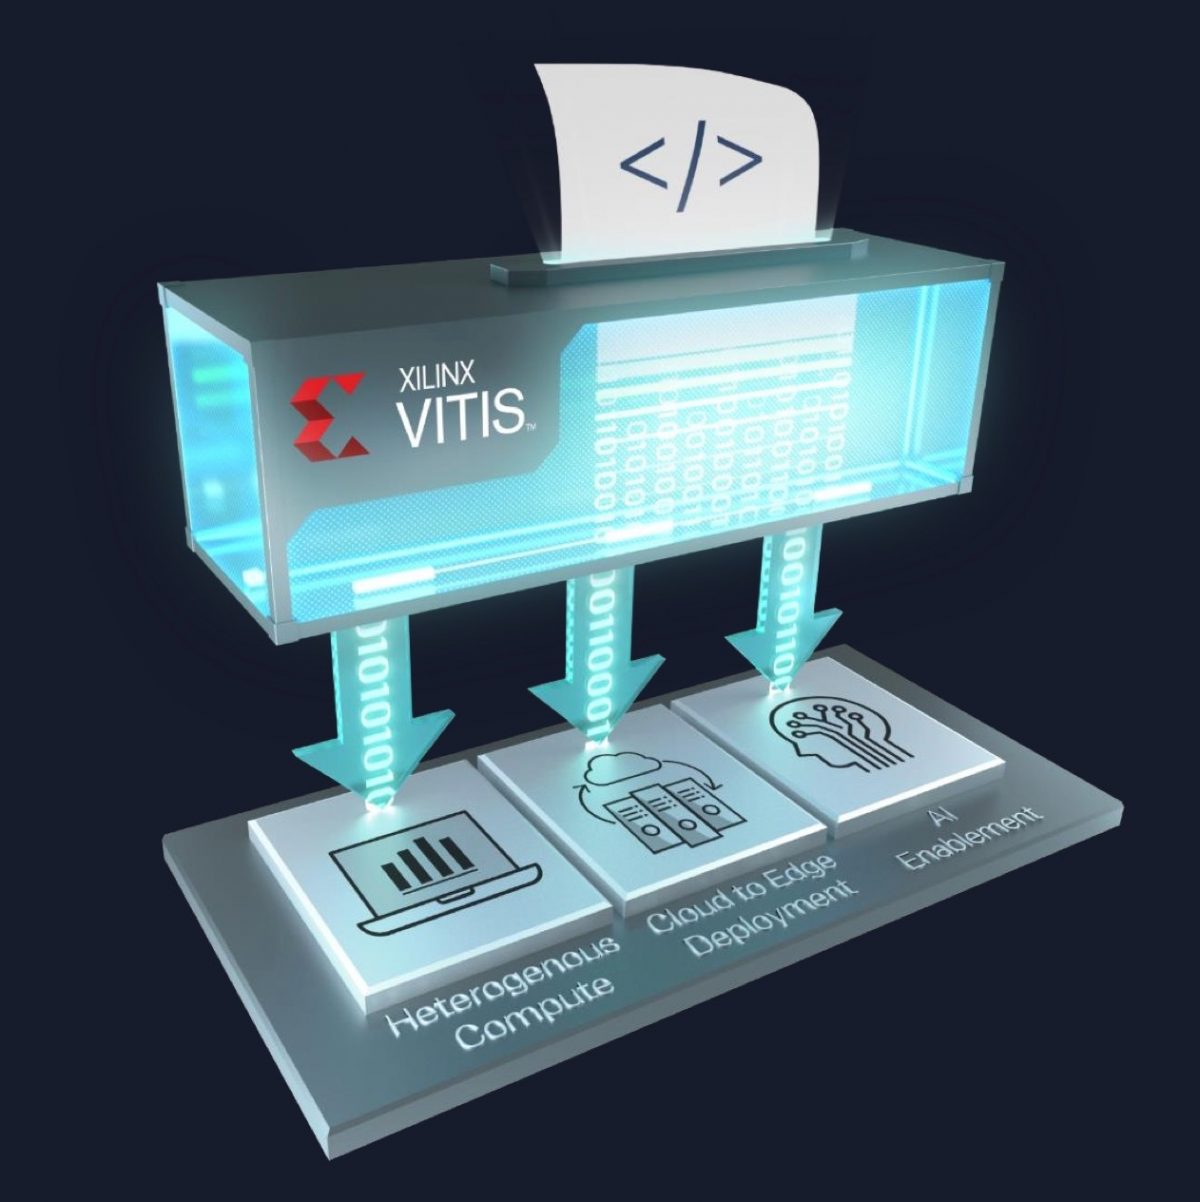 Xilinx Vitis and Vitis AI Software Development Platforms